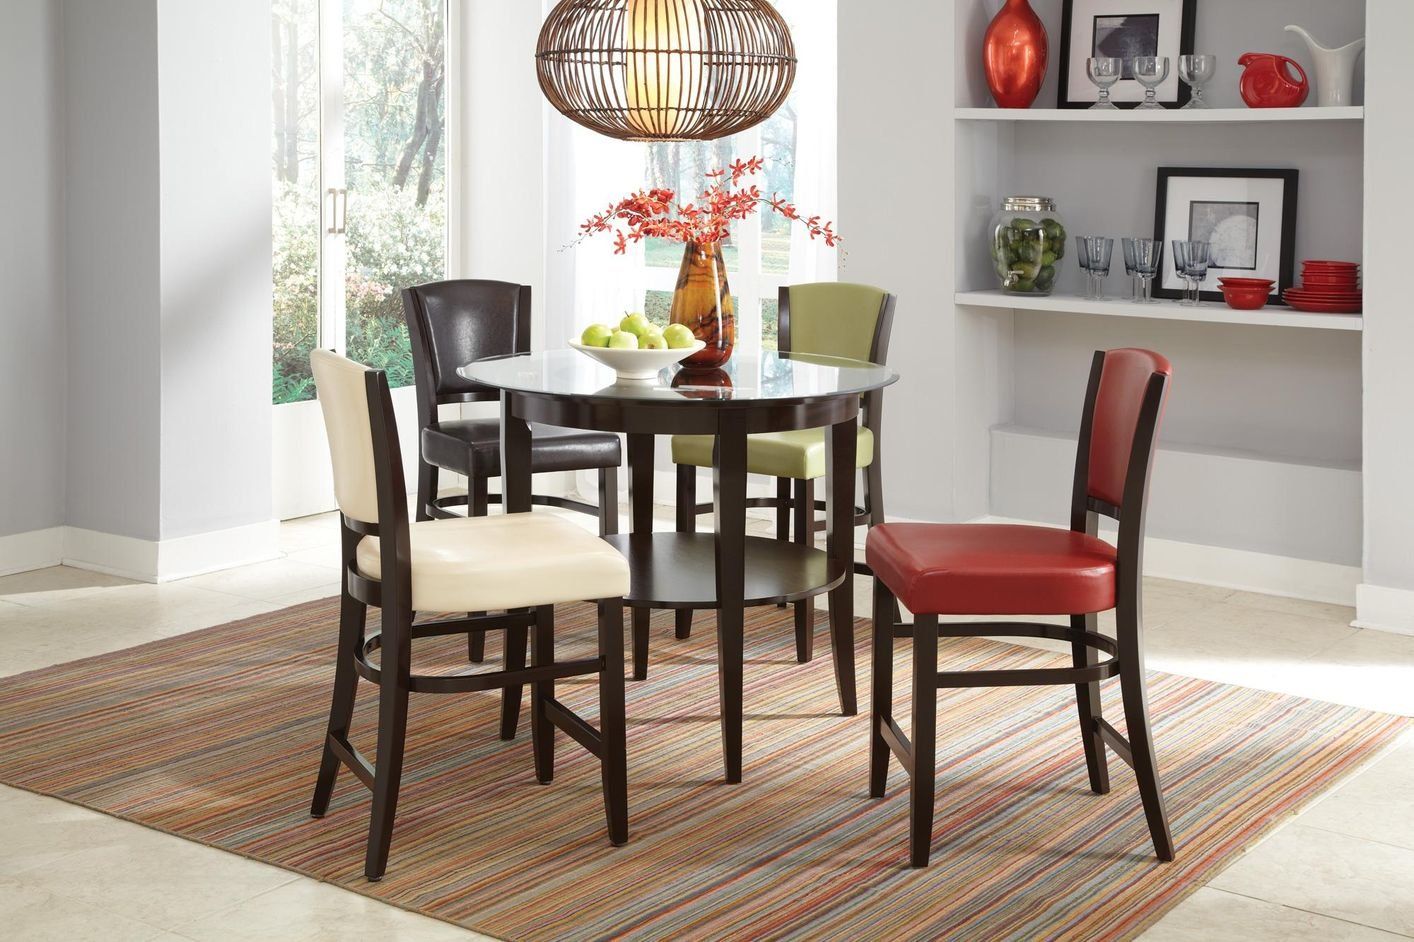 Counter dining room sets